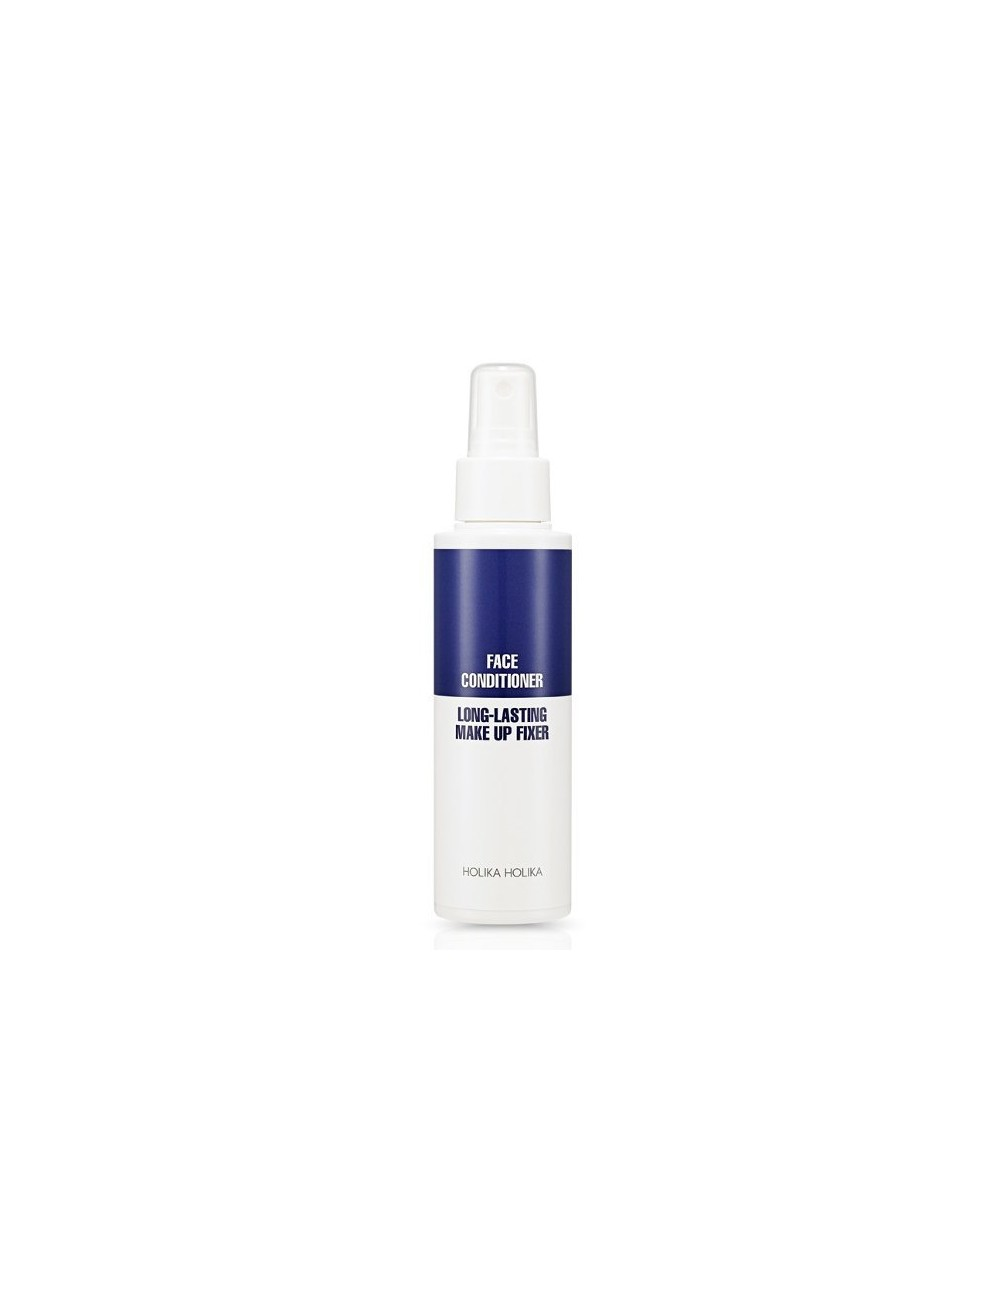 Holika Holika Spray Fijador de Maquillaje Face Conditiomer Make Up Fixer